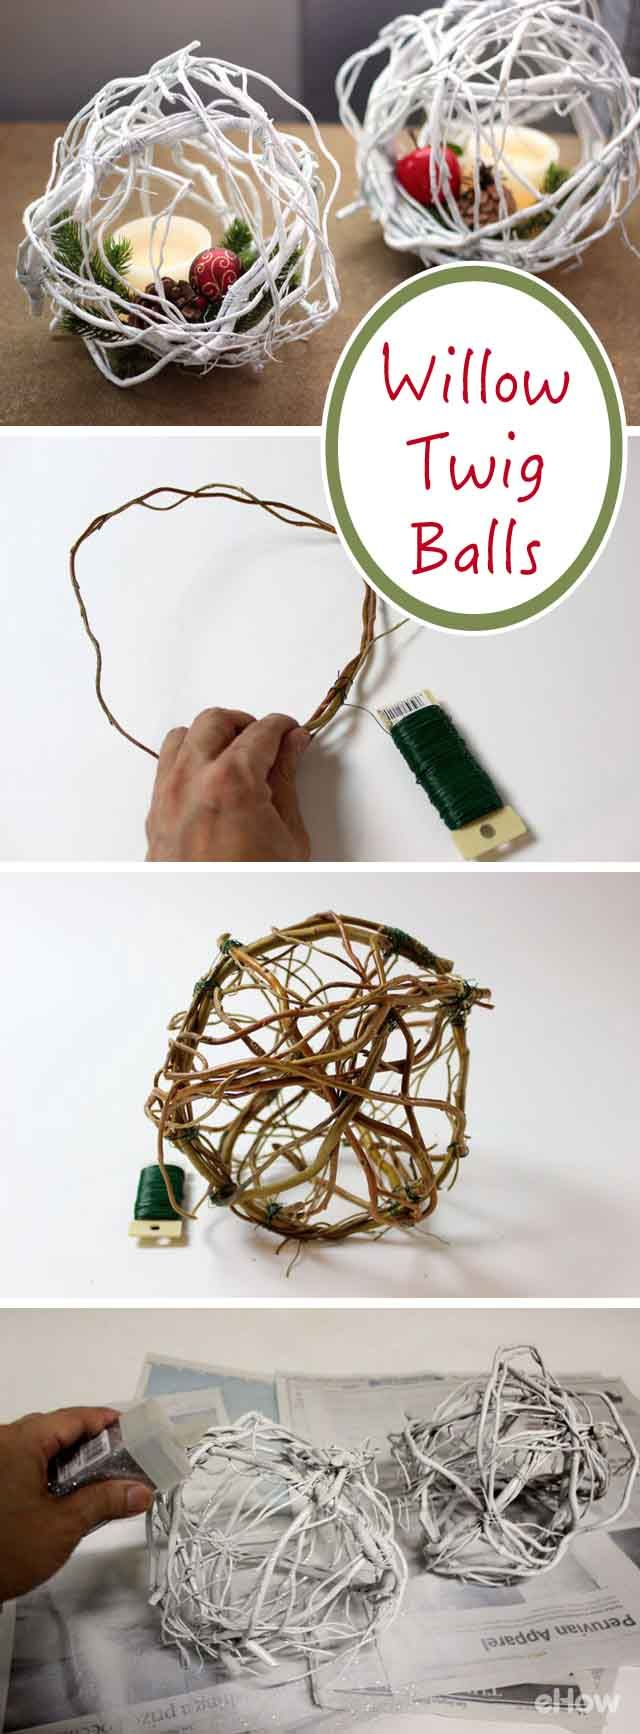 Bring the beauty of a white Christmas inside with these DIY willow twig balls! The curly willow branches are easy to work with because they are so flexible and you can twist them into any form. These are great for not just coffee table decor, but for hanging from the mantel or tree! http://www.ehow.com/how_12343001_diy-willow-twig-balls.html?utm_source=pinterest.com&utm_medium=referral&utm_content=freestyle&utm_campaign=fanpage